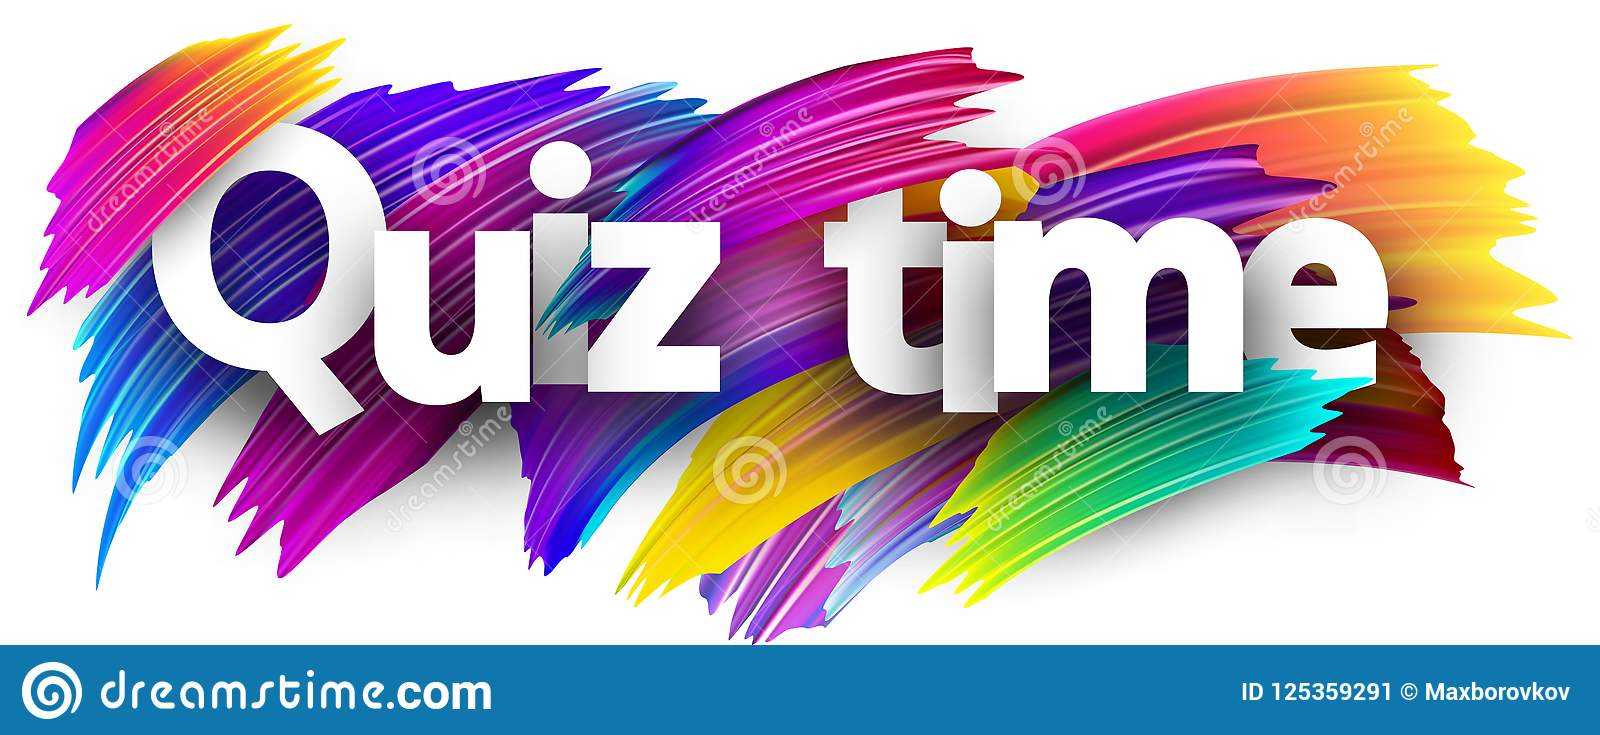 Quiz Time Poster With Colorful Brush Strokes  Stock Vector